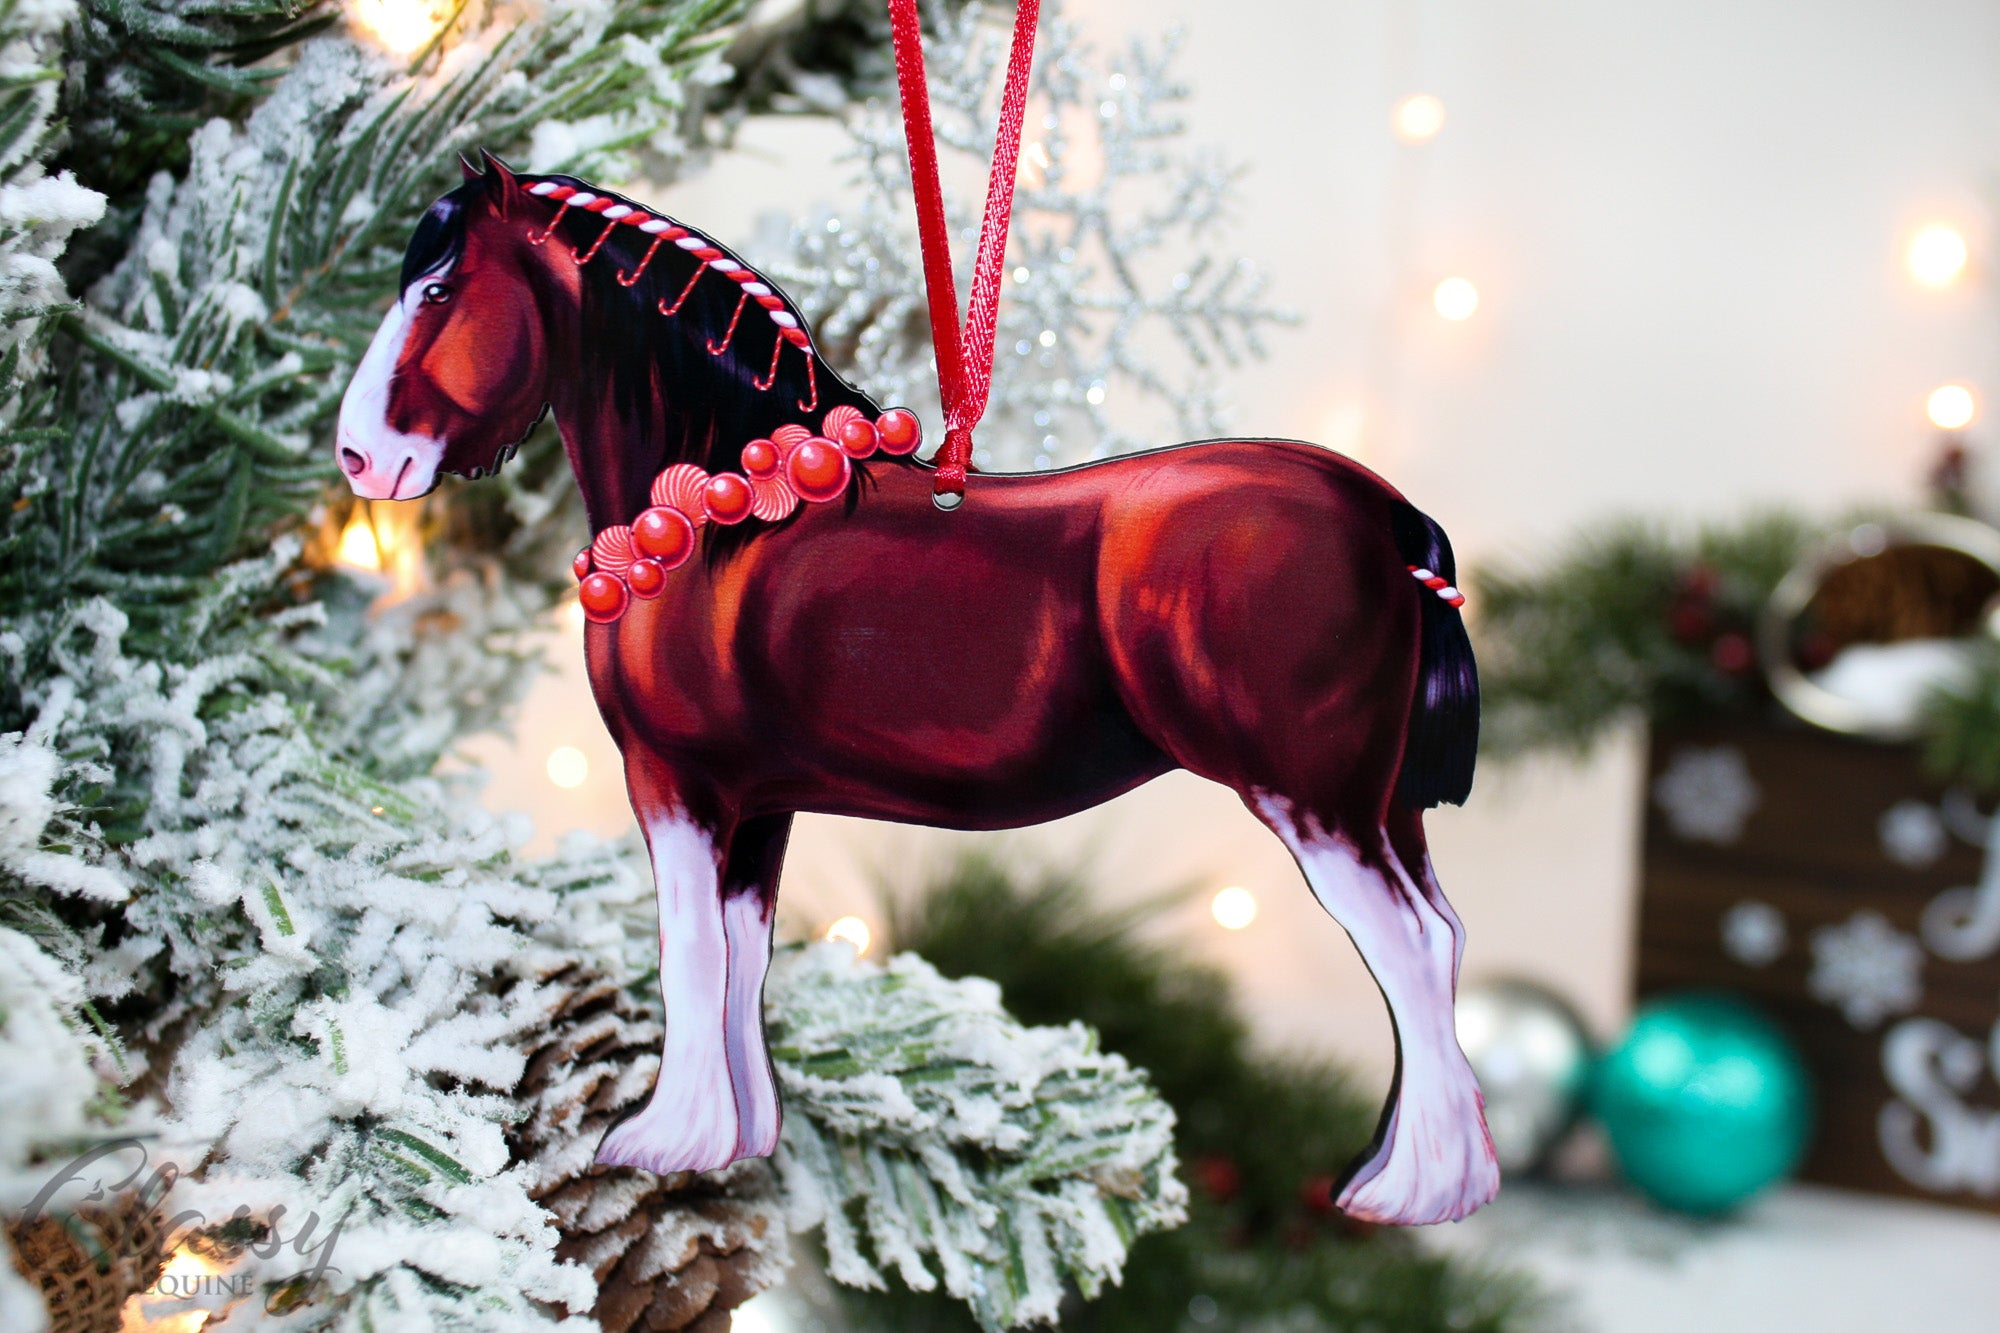 Bay Clydesdale Horse Christmas Ornament Classy Equine